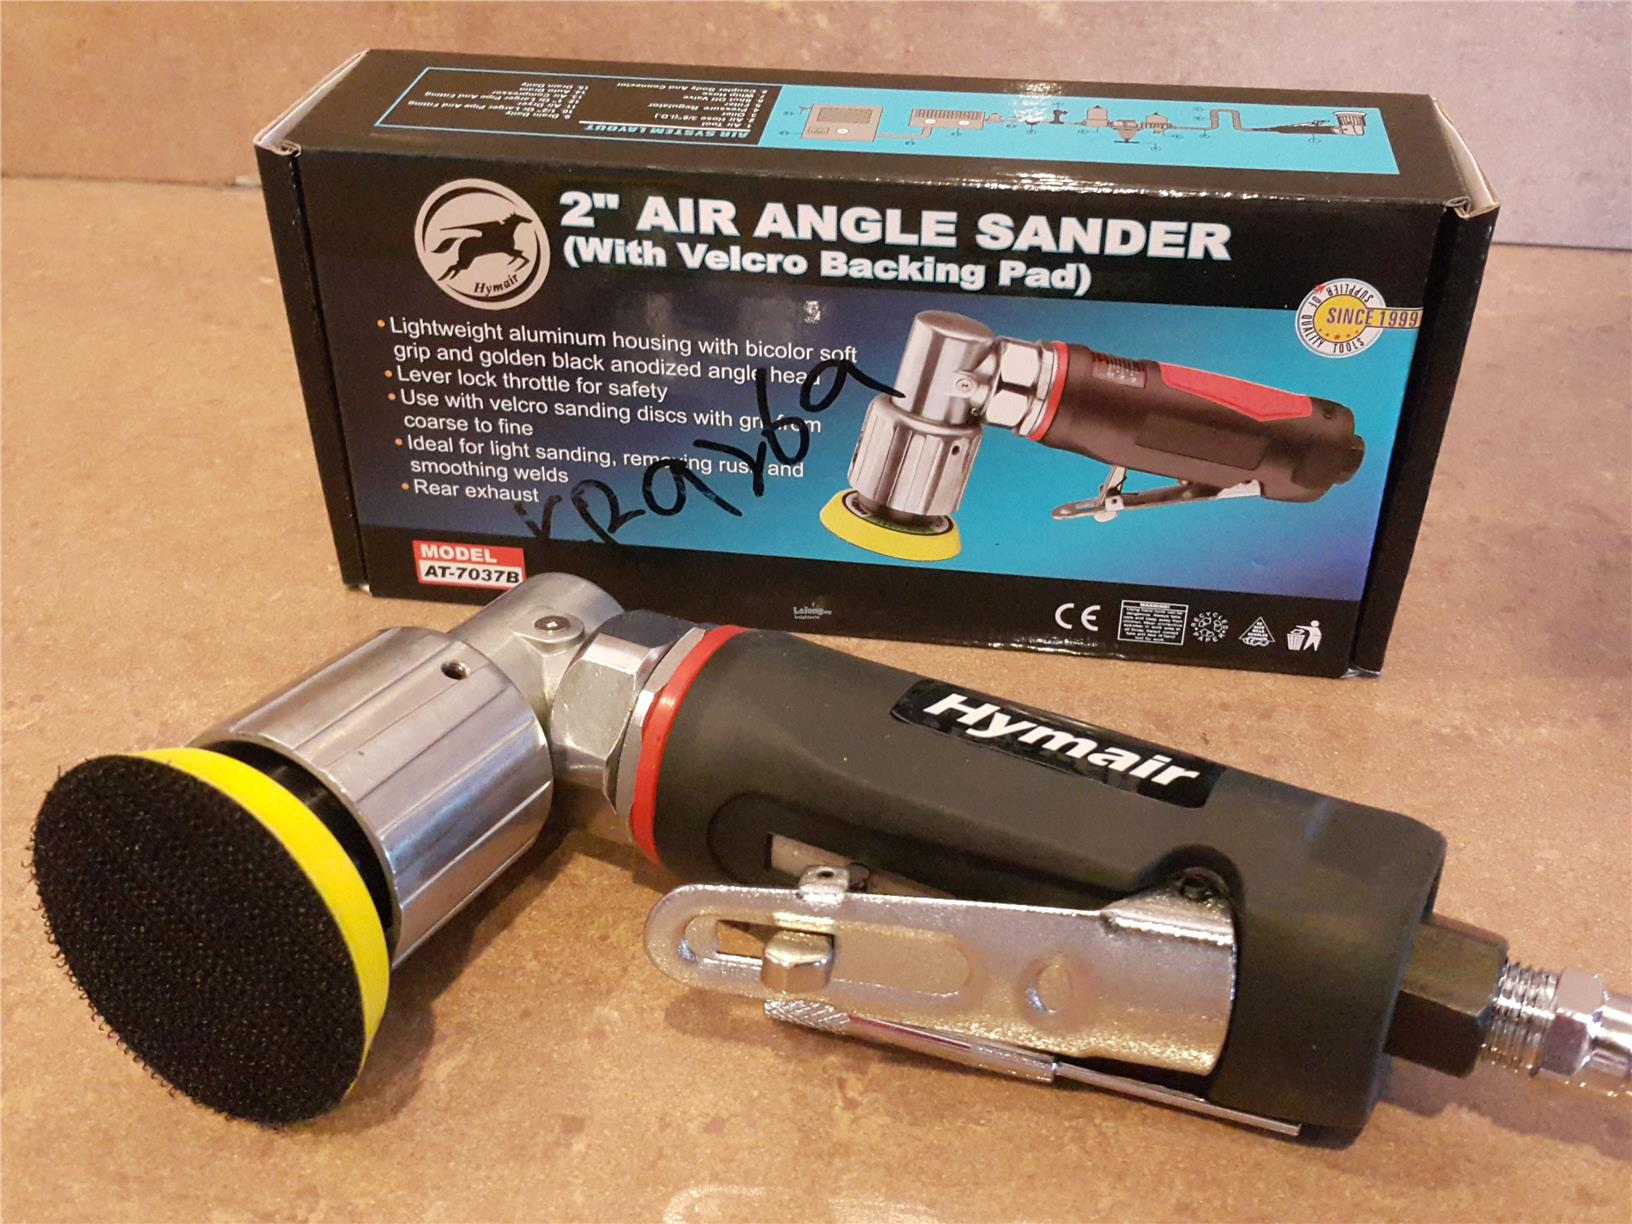 2'' Air Angle Sander with Velcro Backing Pad (AT-7037B) ID779257